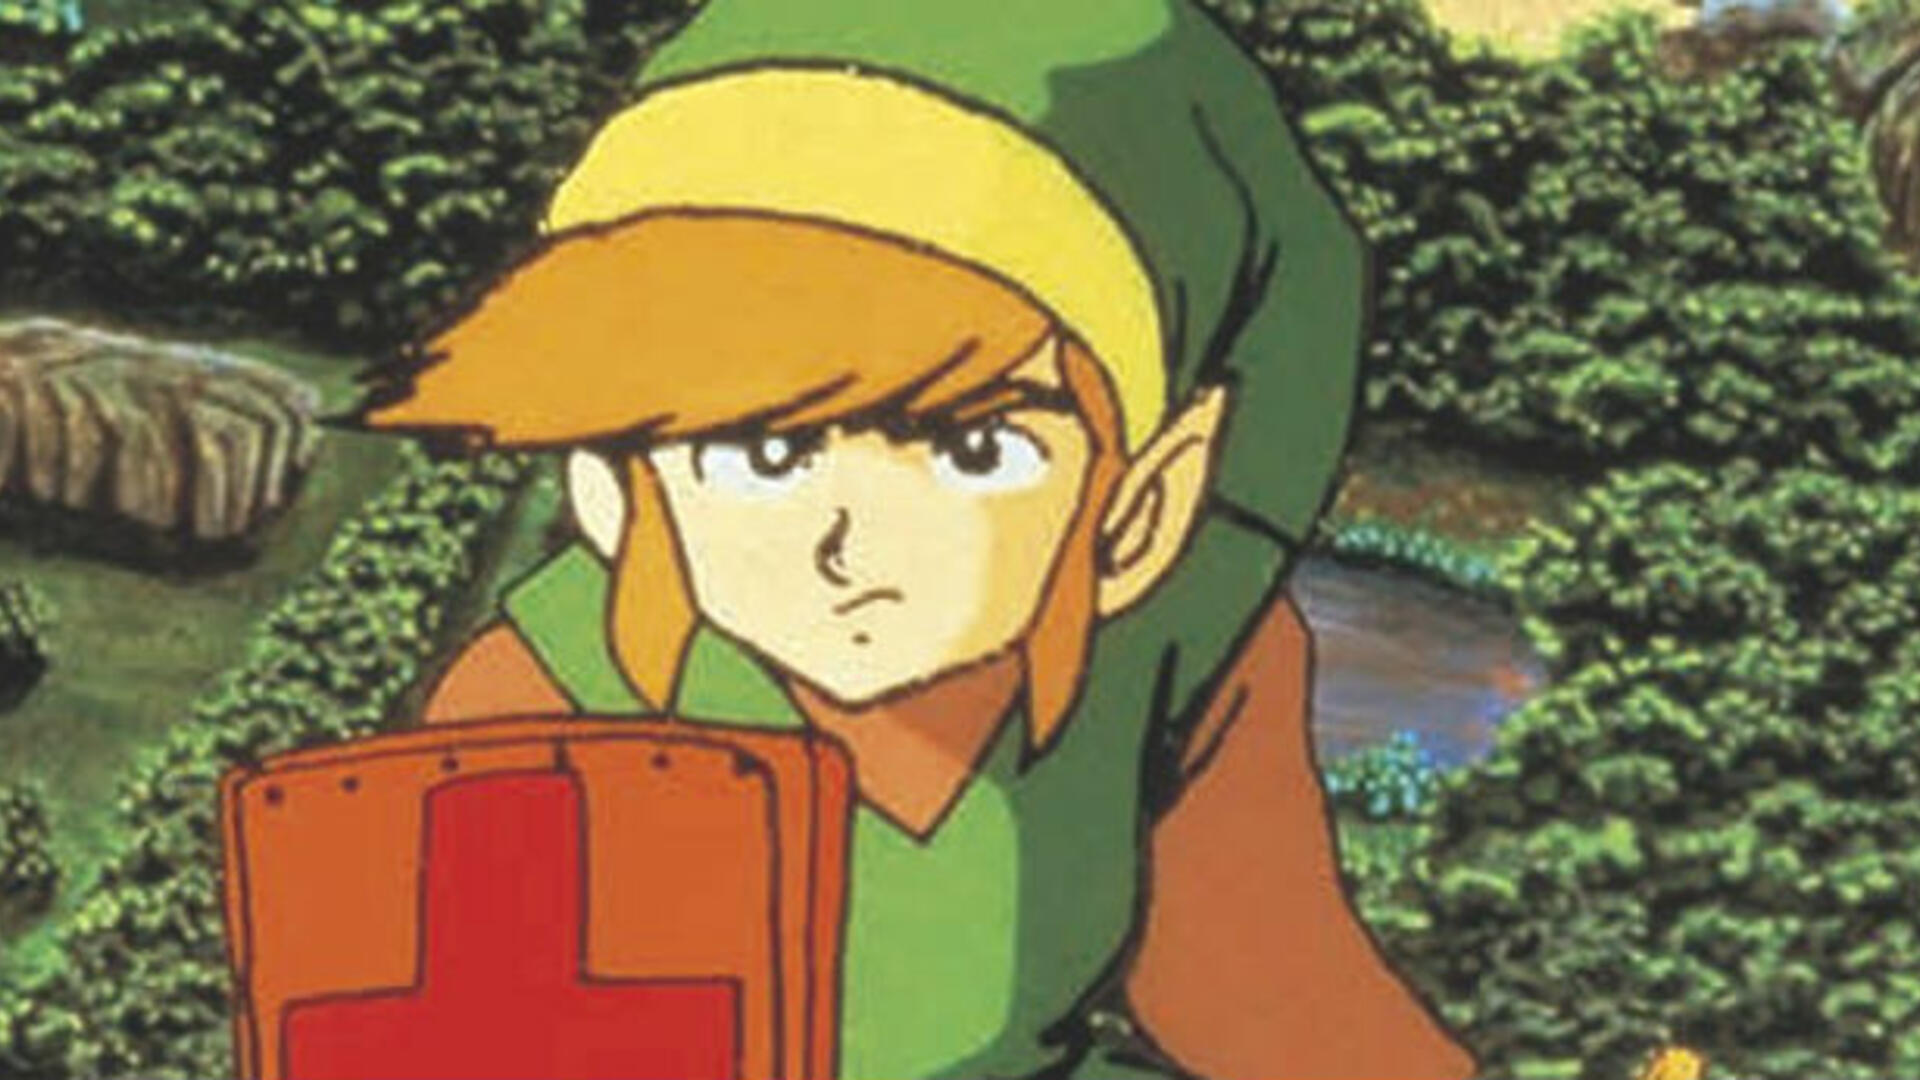 Legend of Zelda Hack Uncovers Creepy Hidden Minus World | USgamer